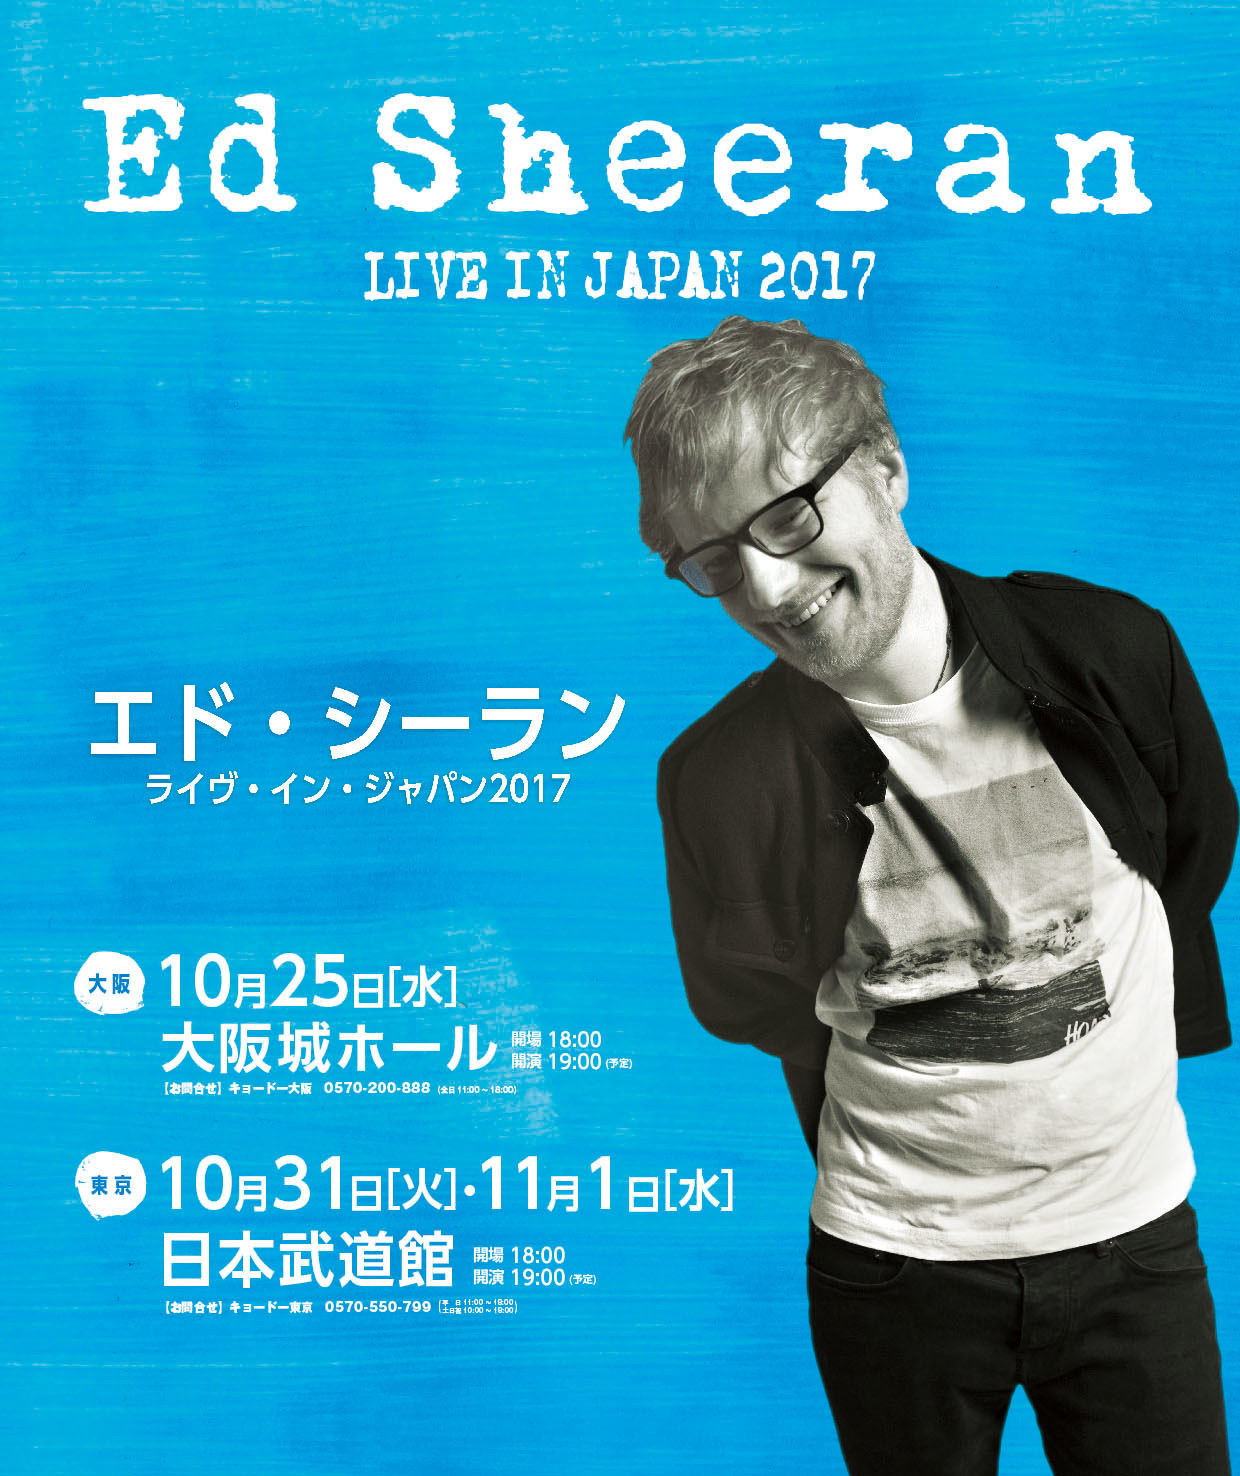 Ed Sheeran LIVE IN JAPAN 2017